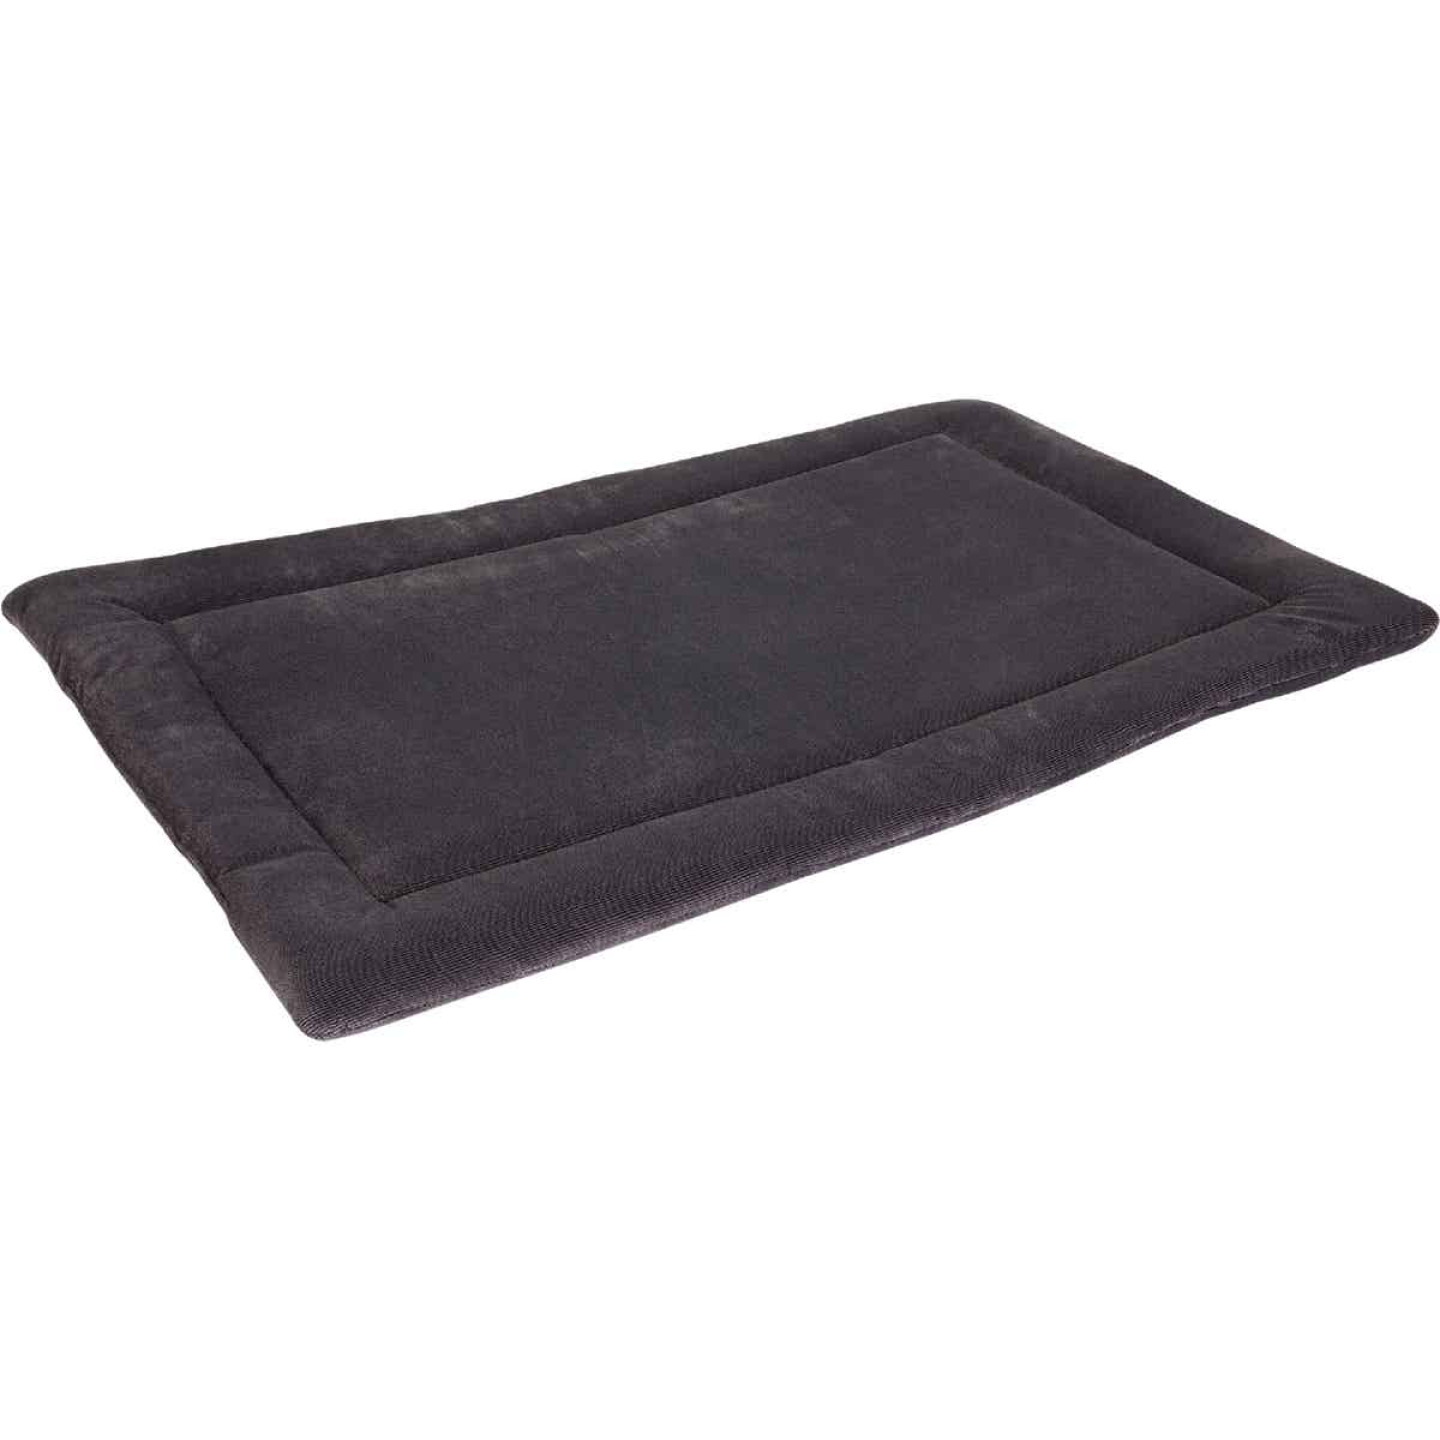 Petmate Aspen Pet 23.5 In. W. x 16.5 In. L. Woven Plush/Polyester Batting Kennel Mat Dog Bed Image 1